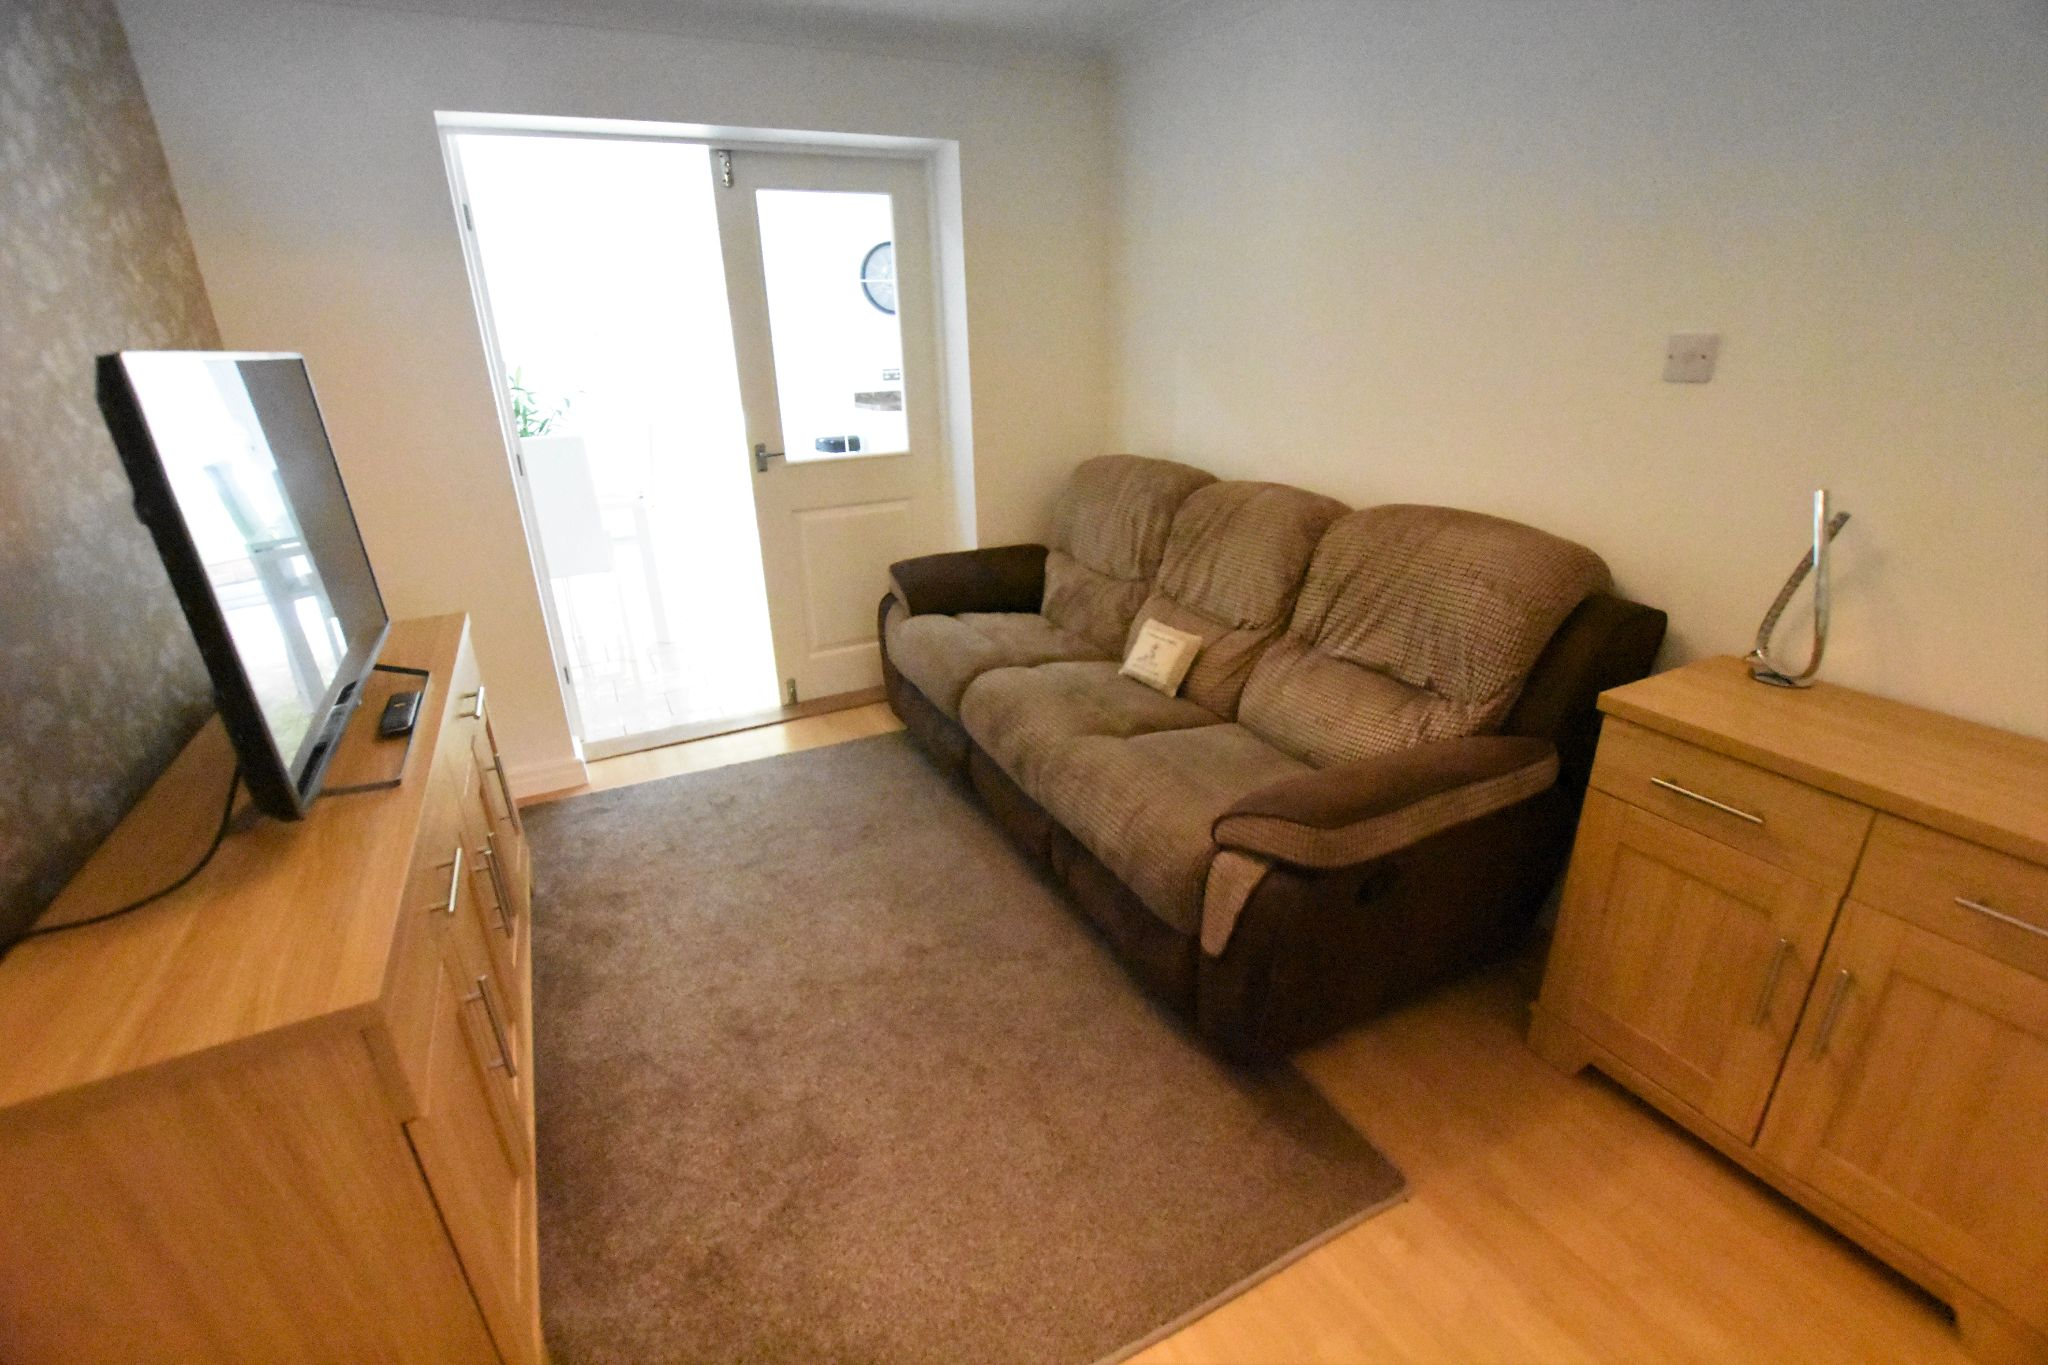 3 bedroom detached house Sold STC in Preston - 2nd Reception